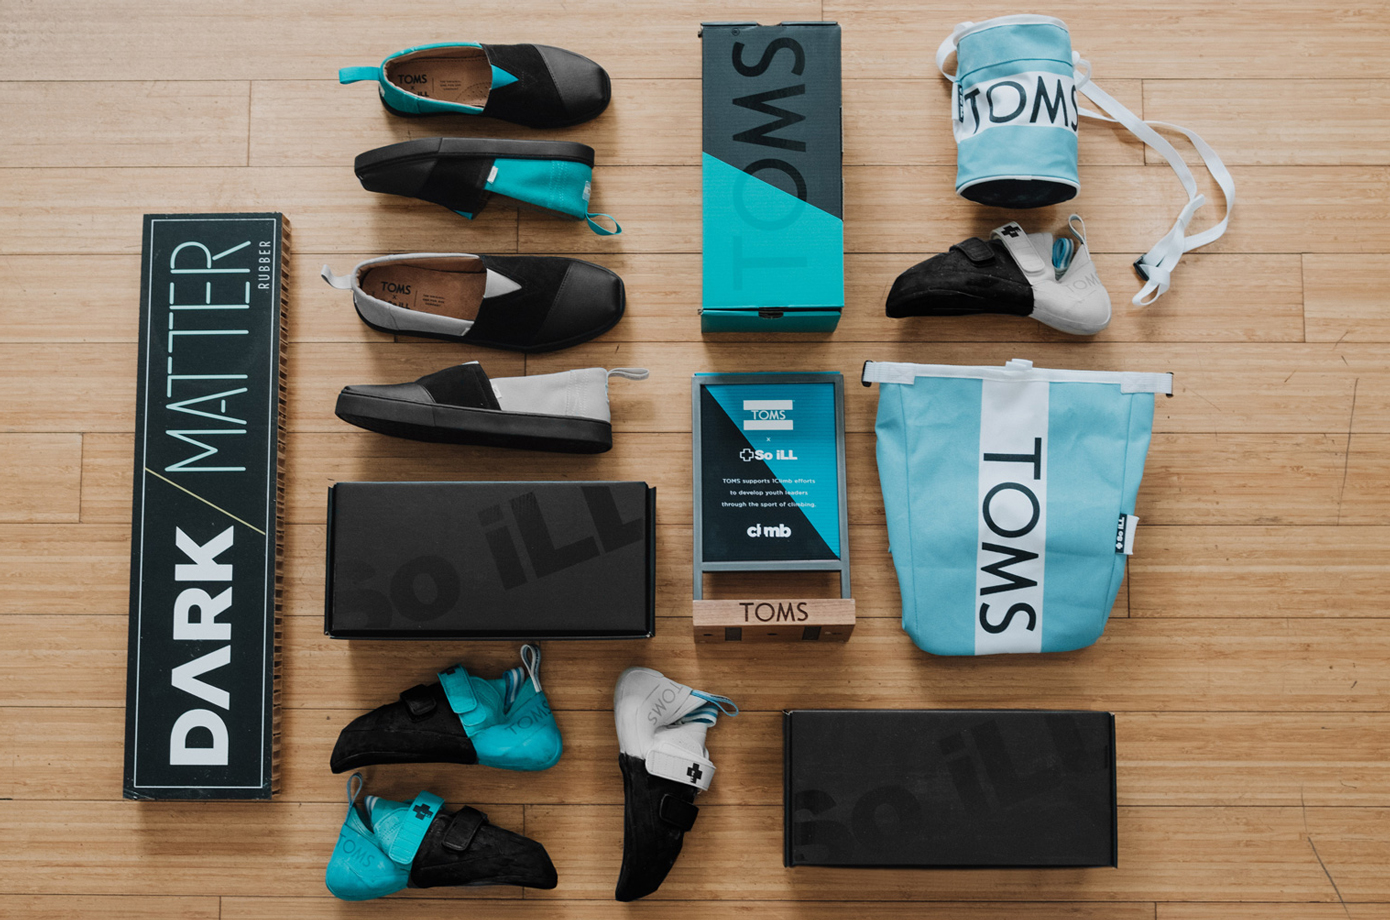 So iLL x TOMS Product Collaboration for 1Climb campaign.